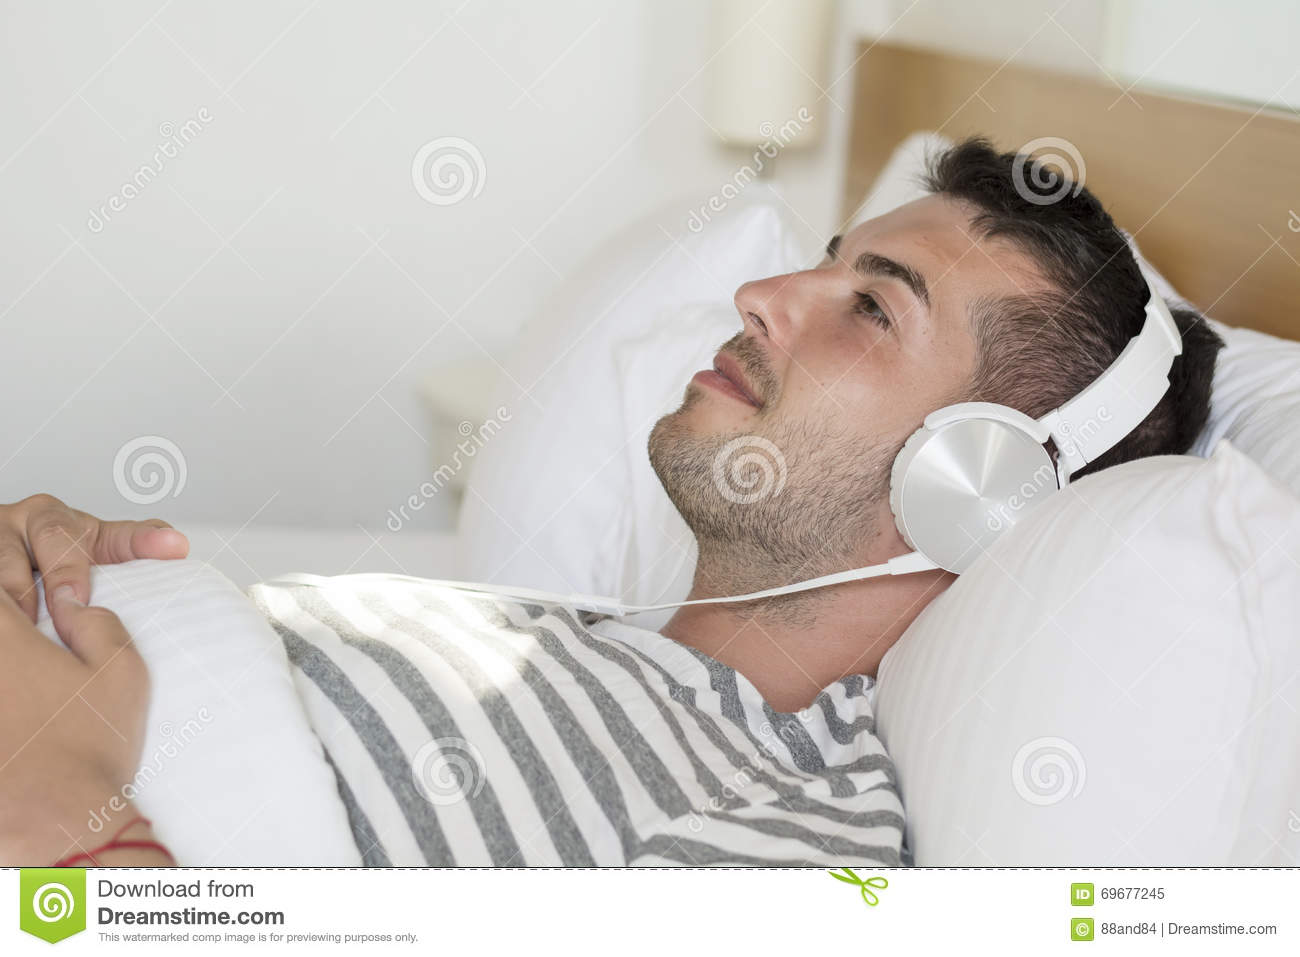 young man laying in bed listening music stock image - image: 69677245